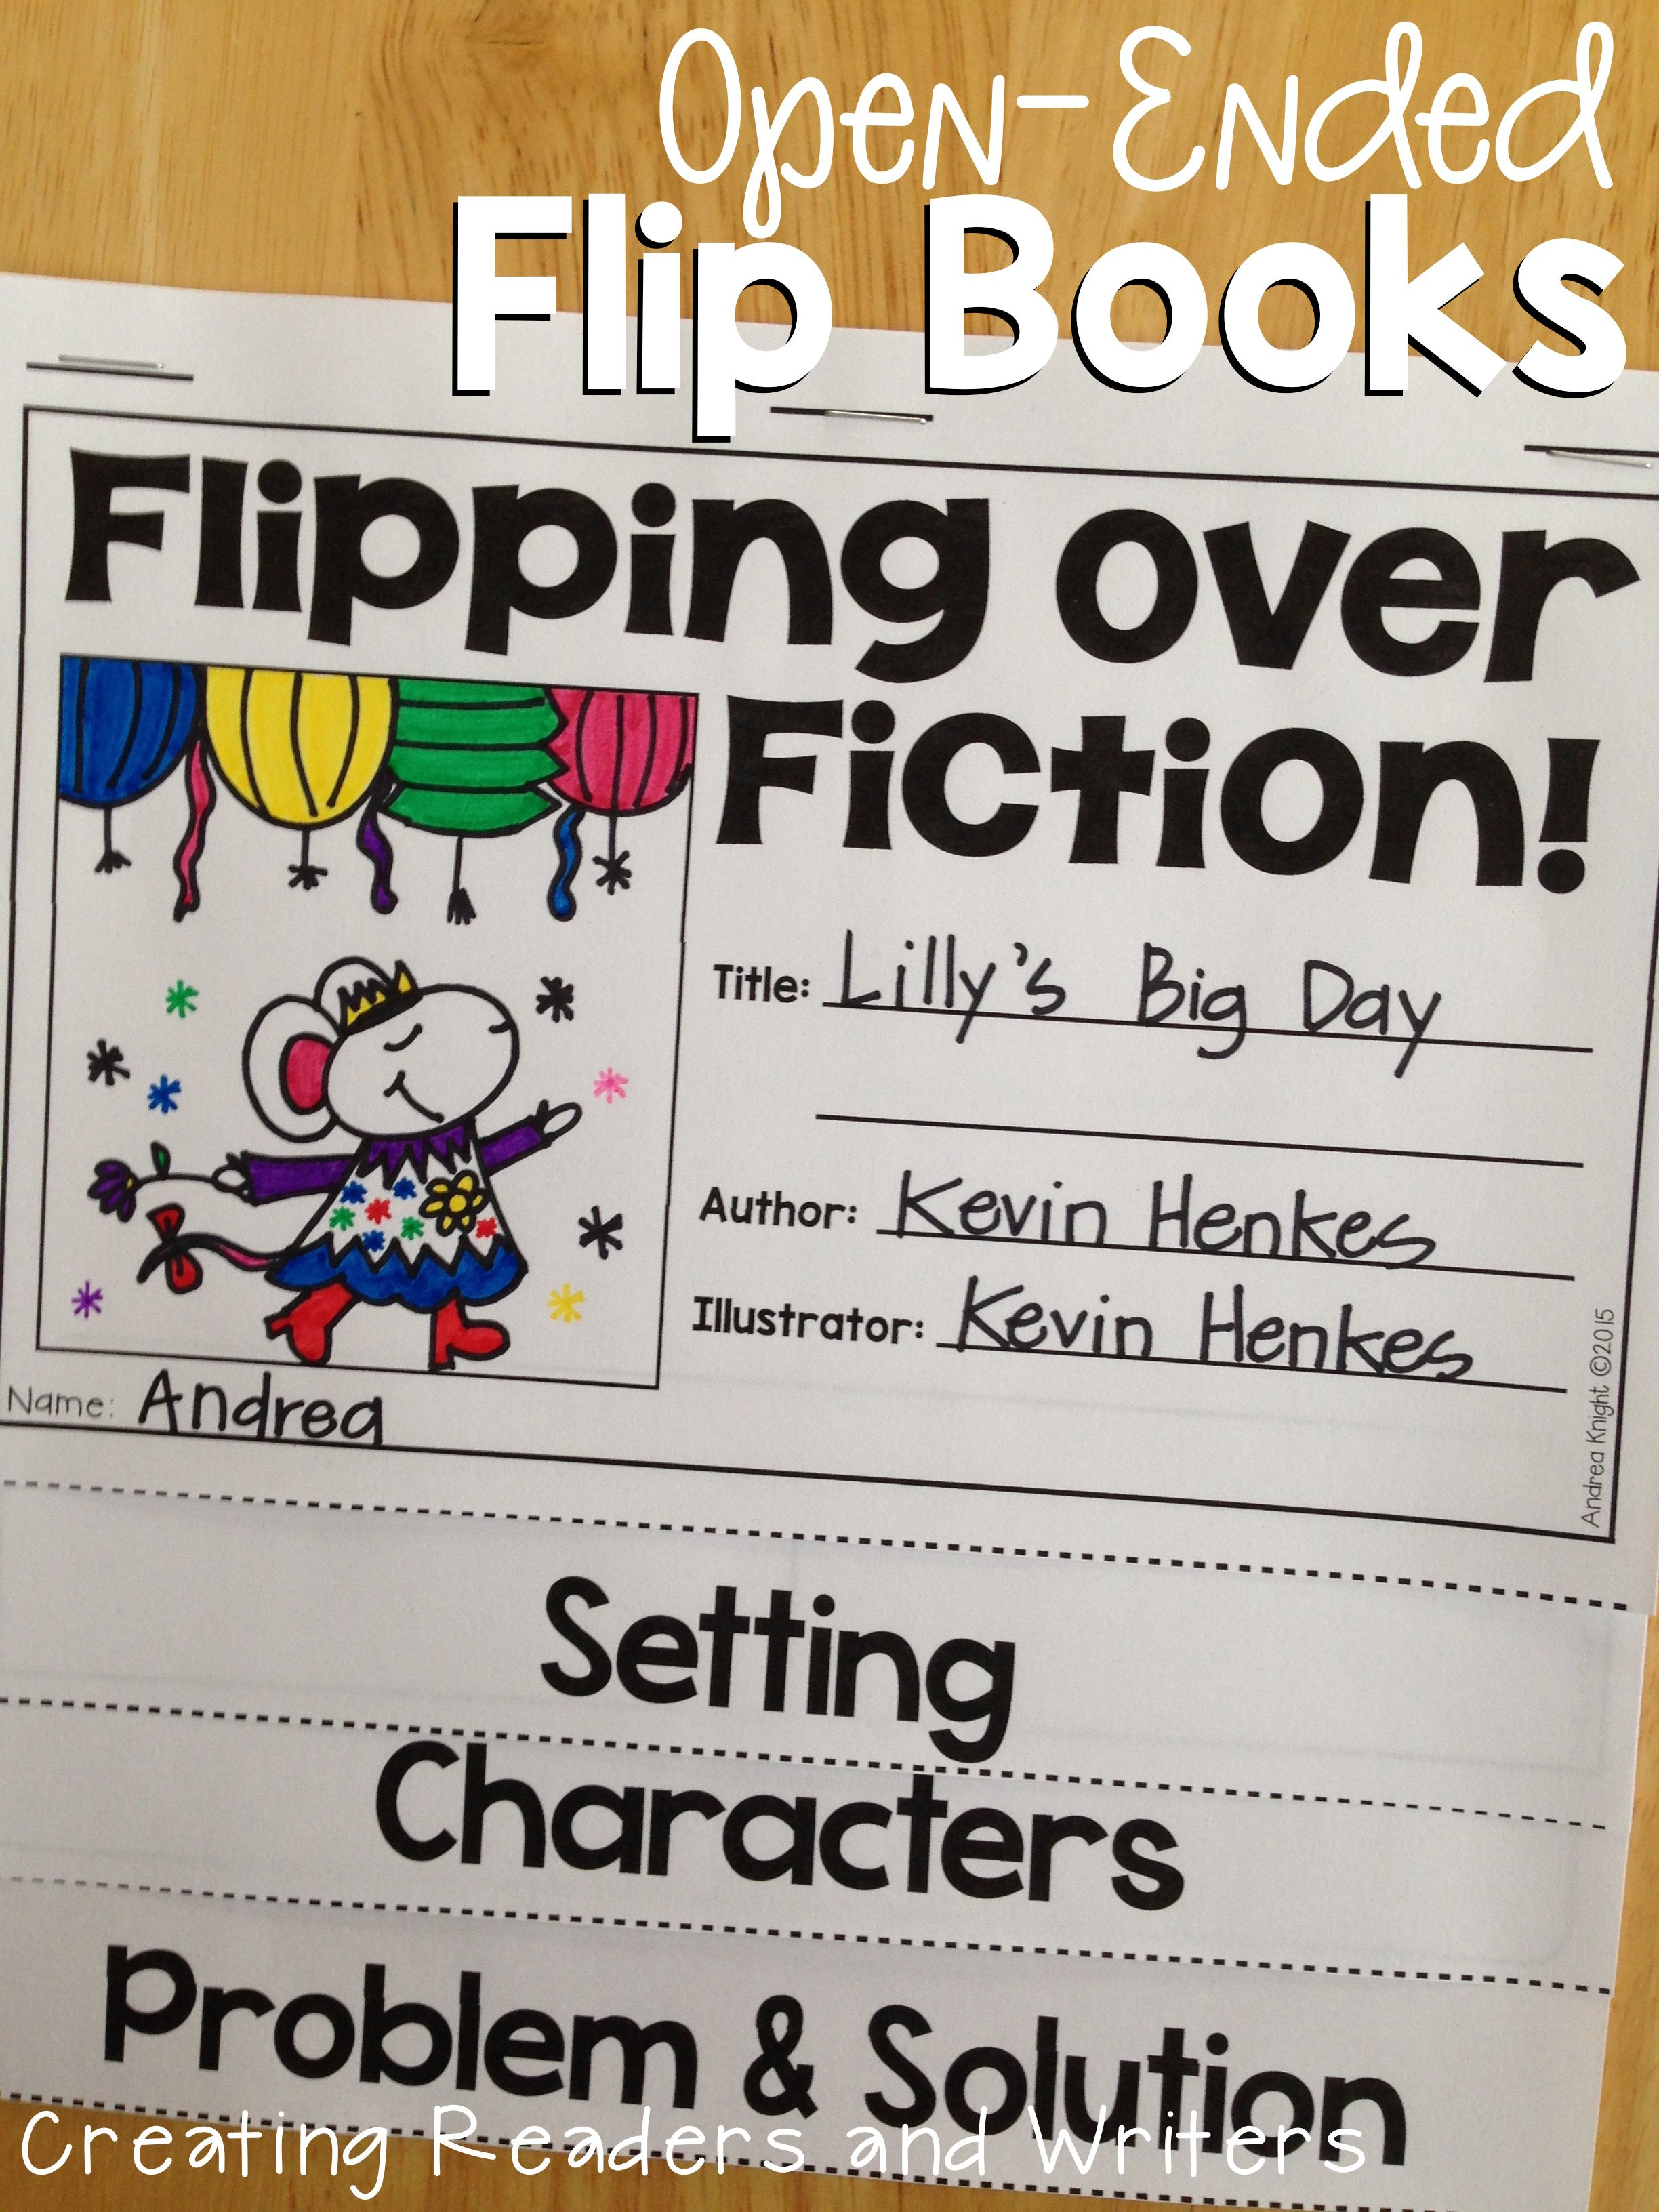 Open Ended Flip Book Templates For Fiction And Nonfiction Texts A Great Way To Differentiate